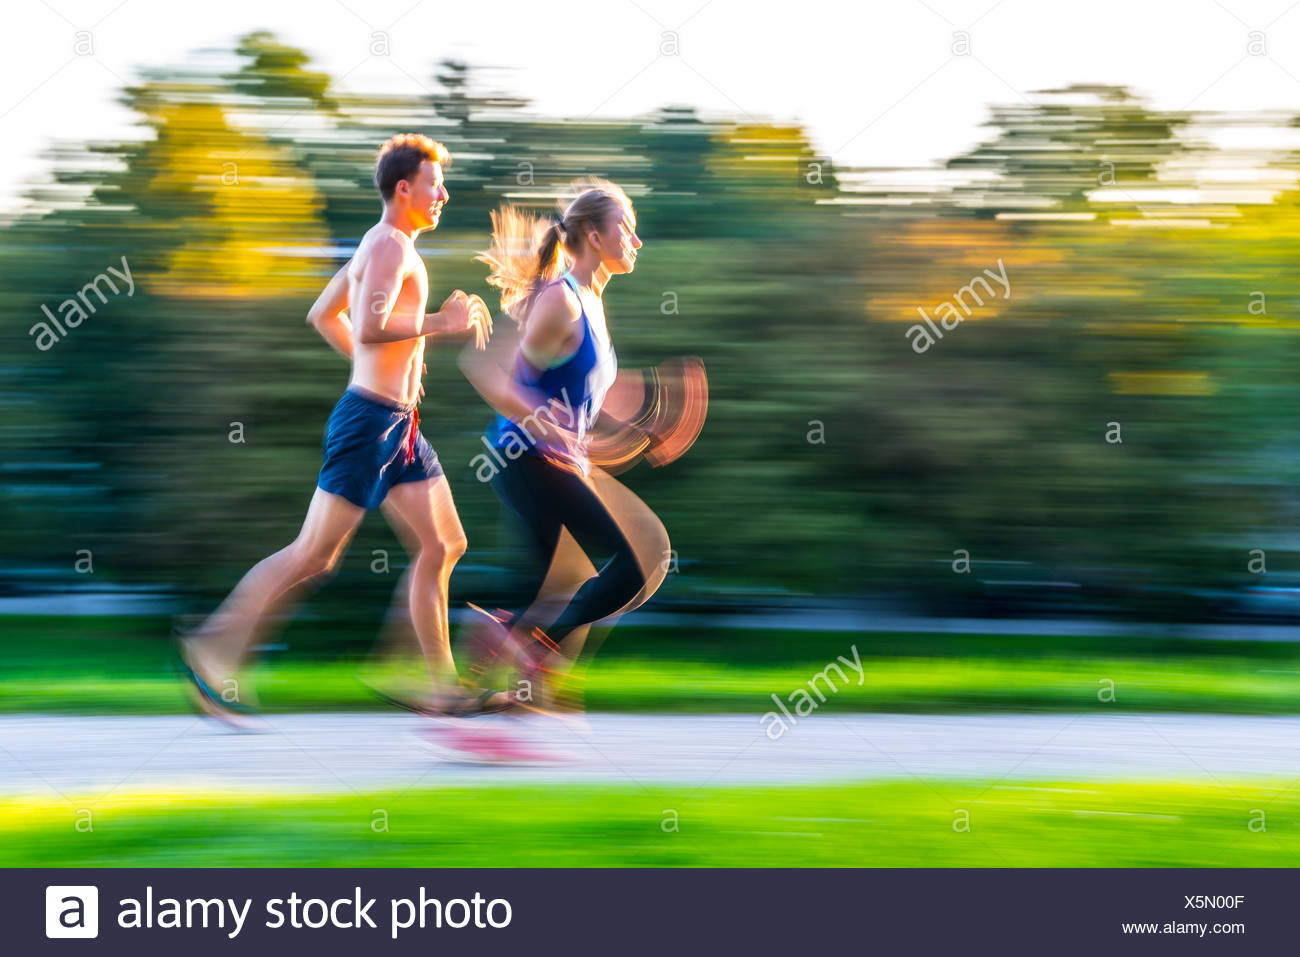 Panning shot, young woman and young man in sportswear jogging through park, Munich, Upper Bavaria, Bavaria, Germany - Stock Image